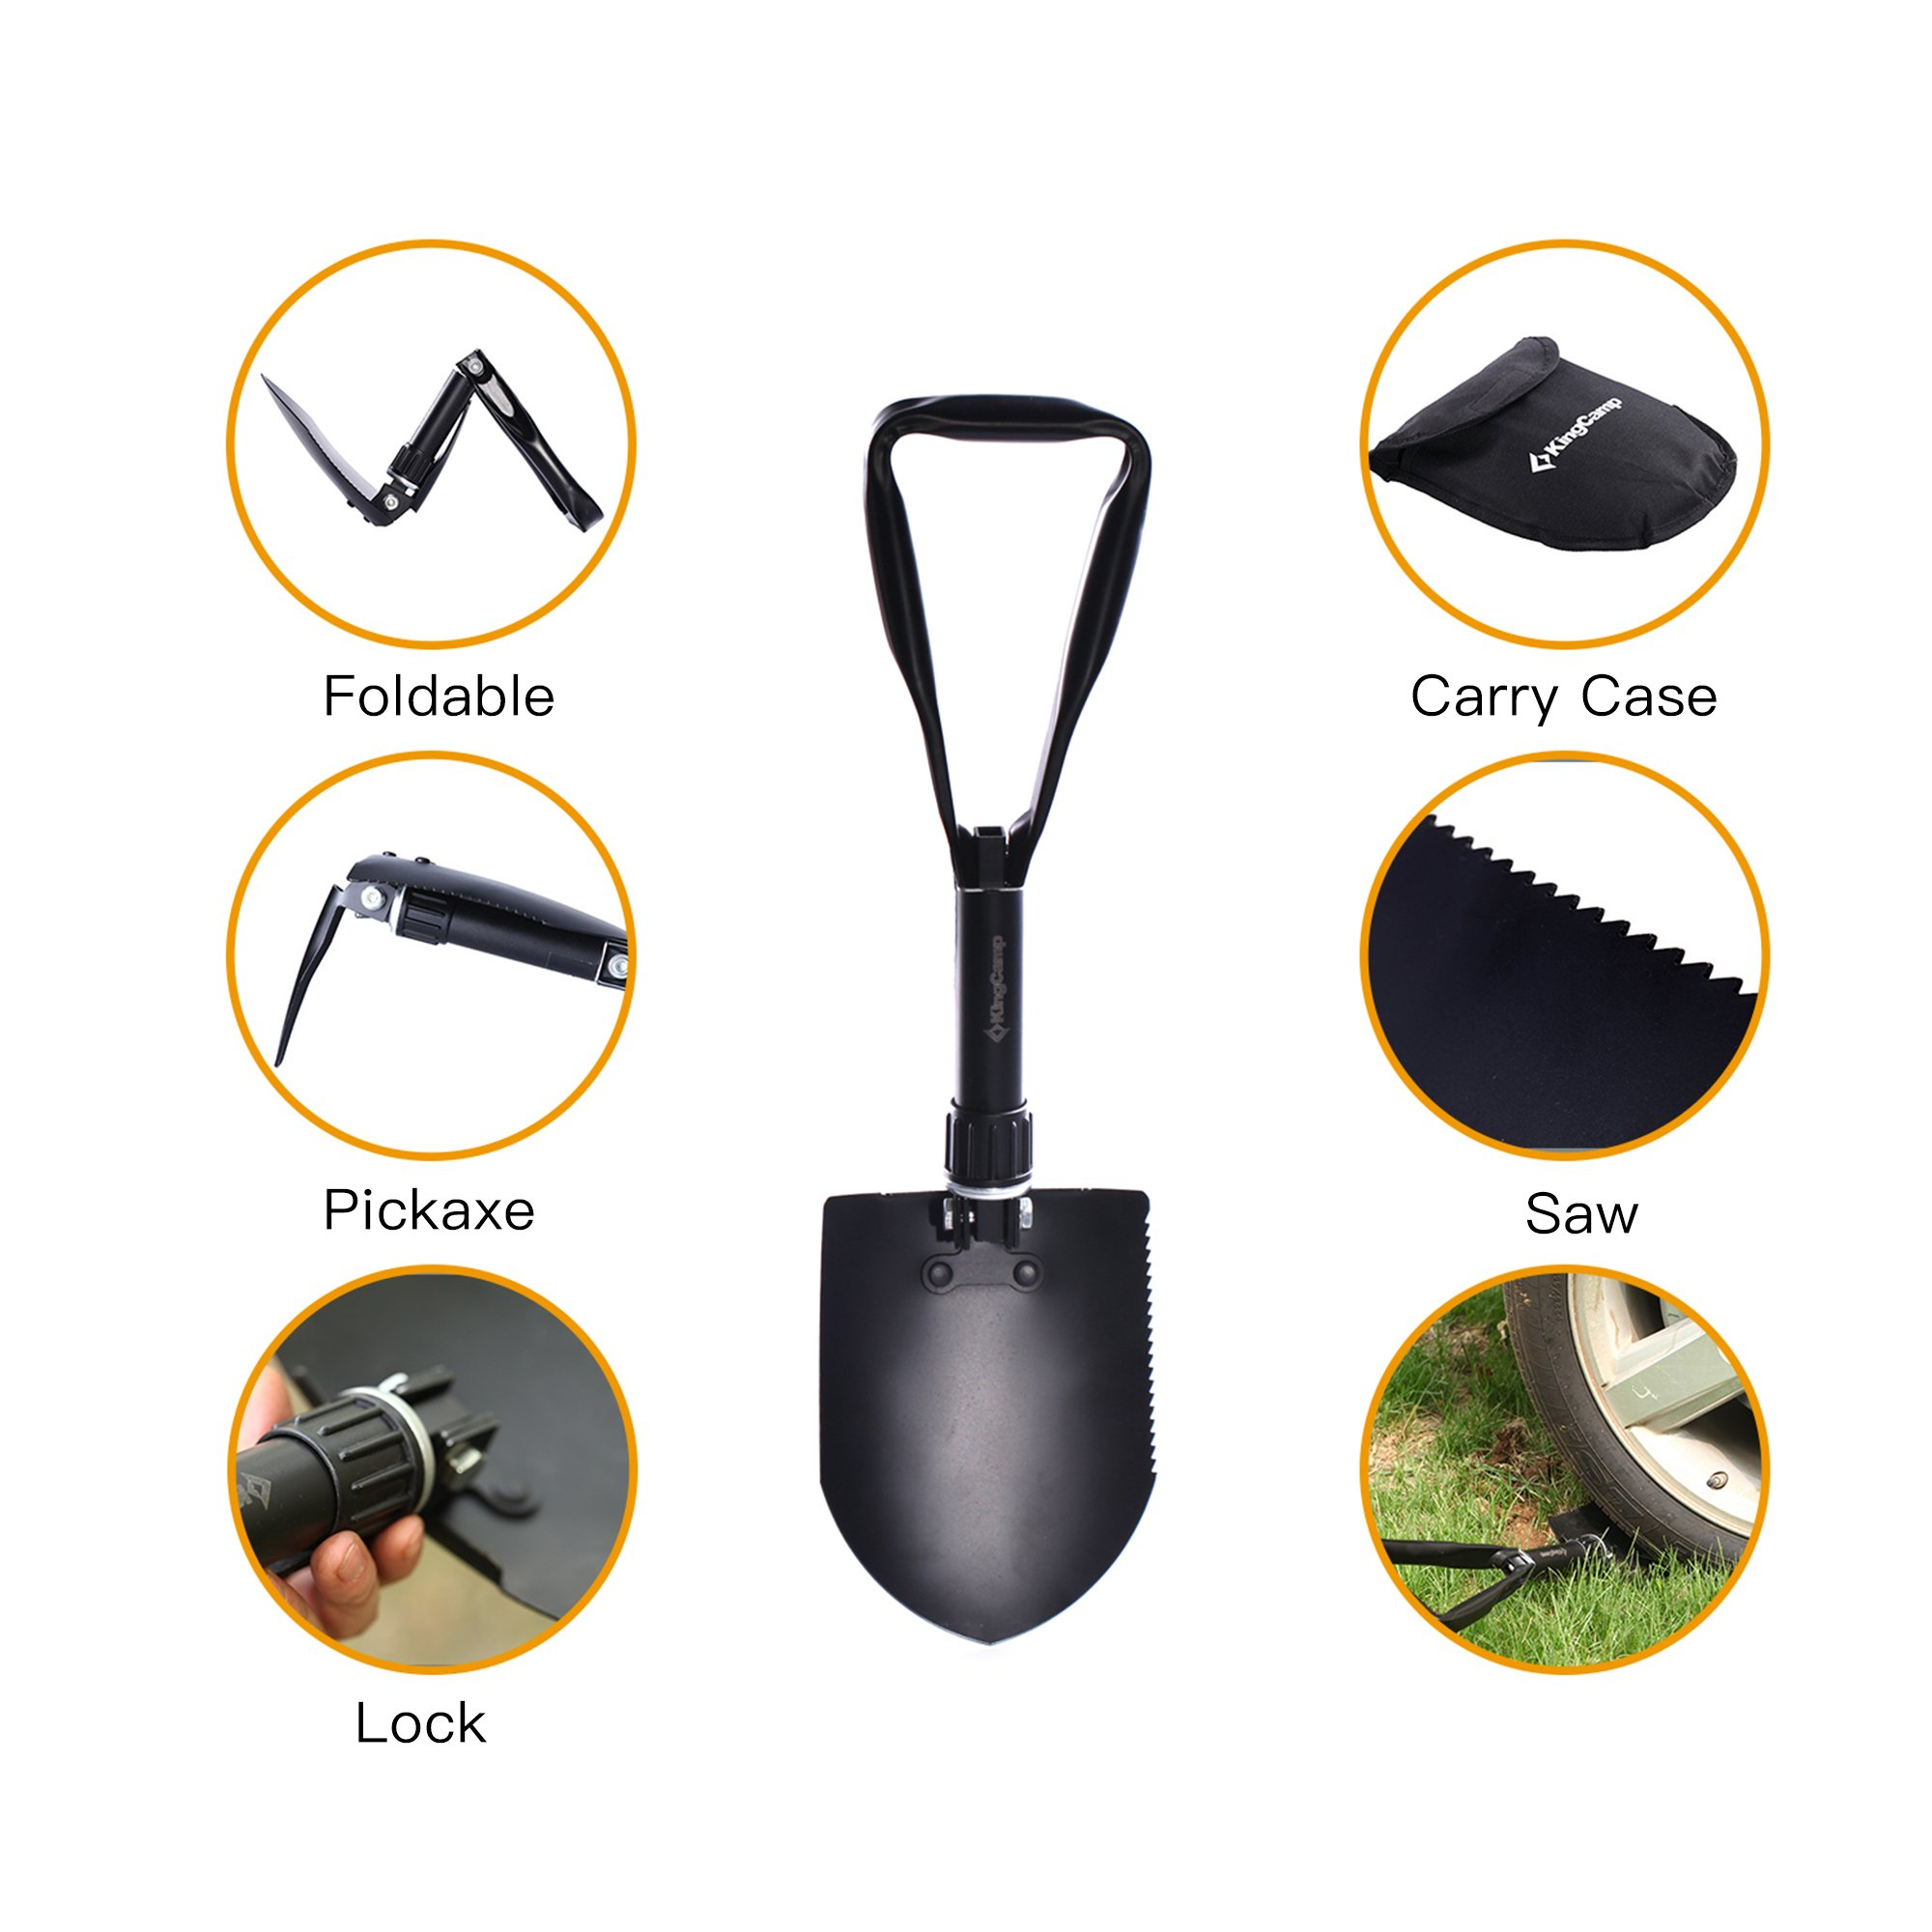 KingCamp Military Portable Folding Shovel and Pickax, Compact Multifunctional Entrenching Tool with Nylon Carry Case for Hiking, Hunting, Fishing, Gardening, Camping, Backpacking, Emergencies by KingCamp (Image #2)